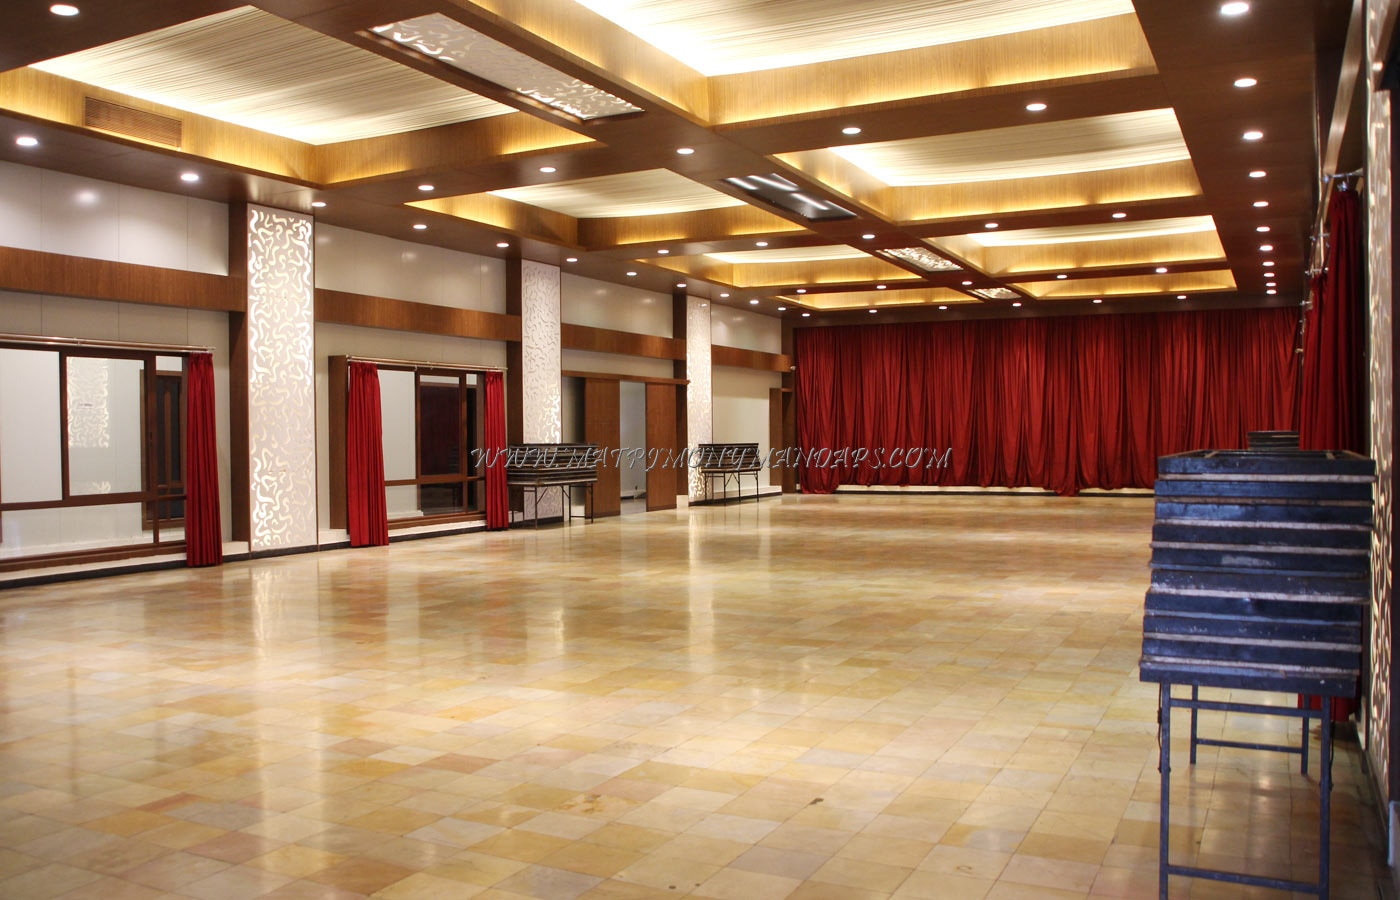 Find the availability of the Elaan Royal Orchid Convention Centre (A/C) in bellary road, Bangalore and avail special offers